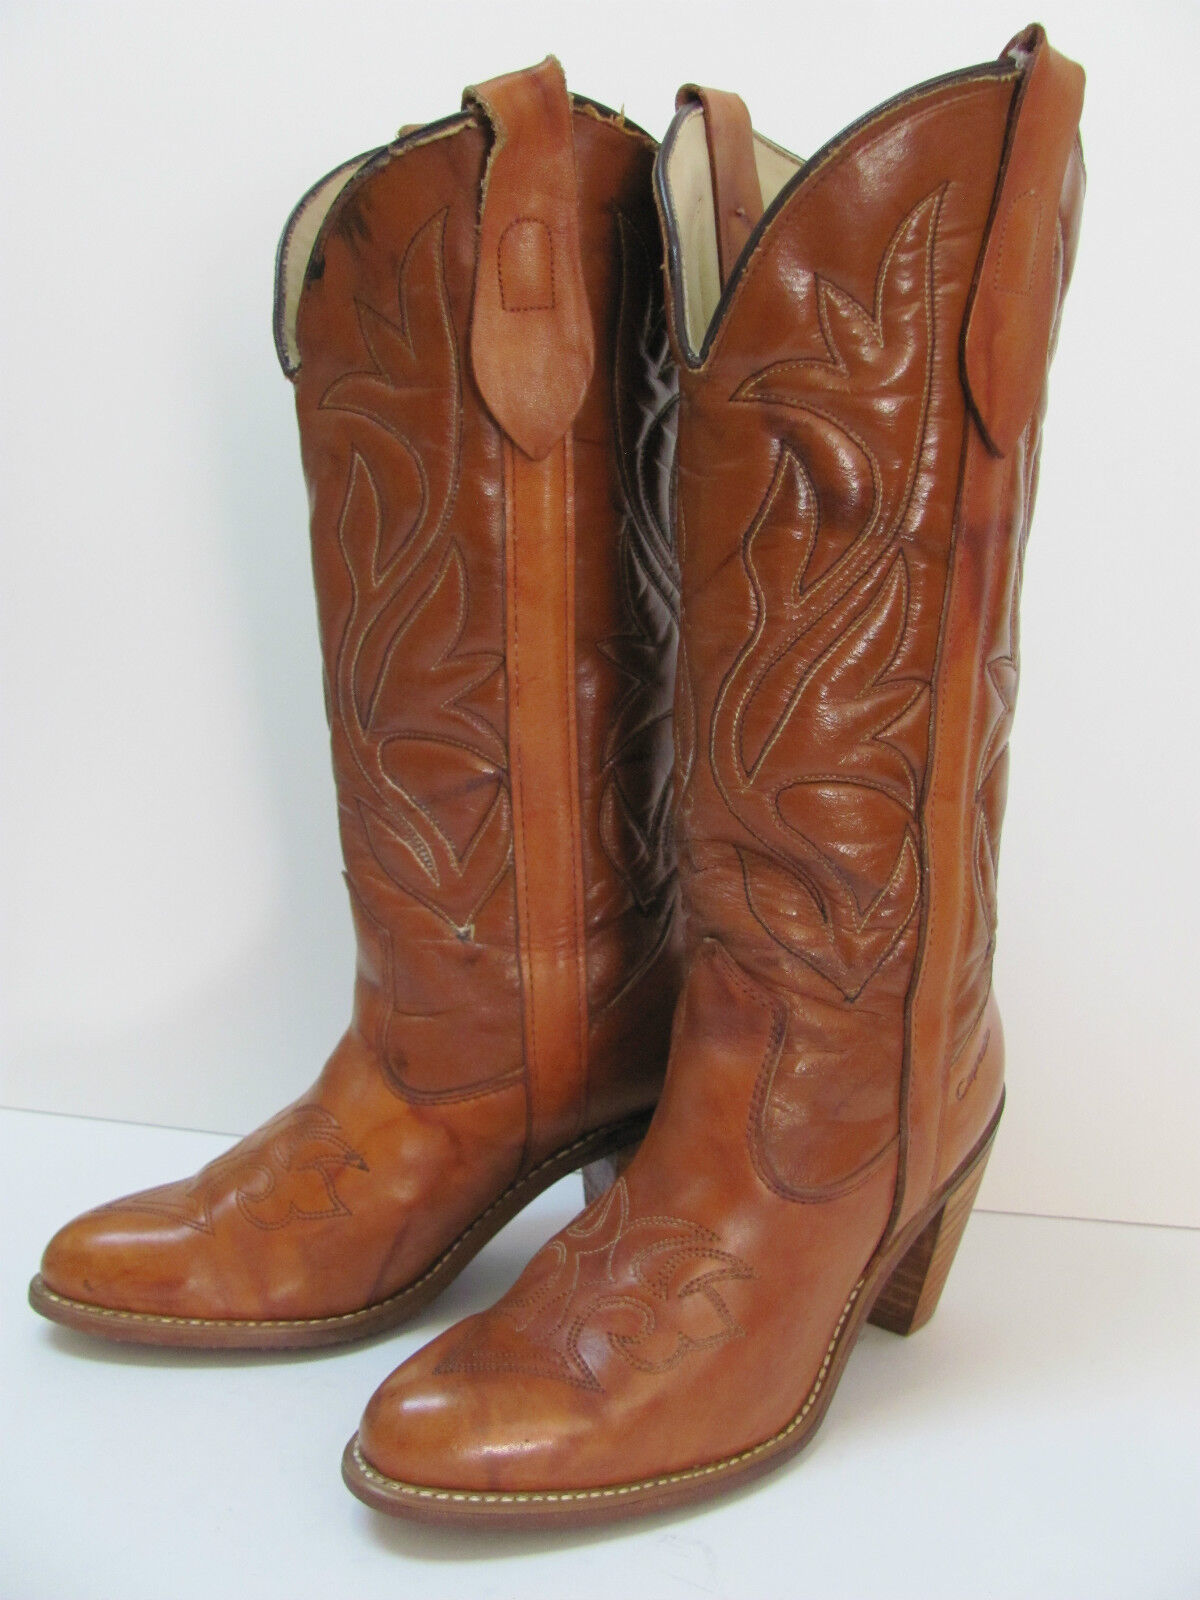 Vintage Capezio Blond Burnished Western Fashion Boot, Size 5M, Made in USA